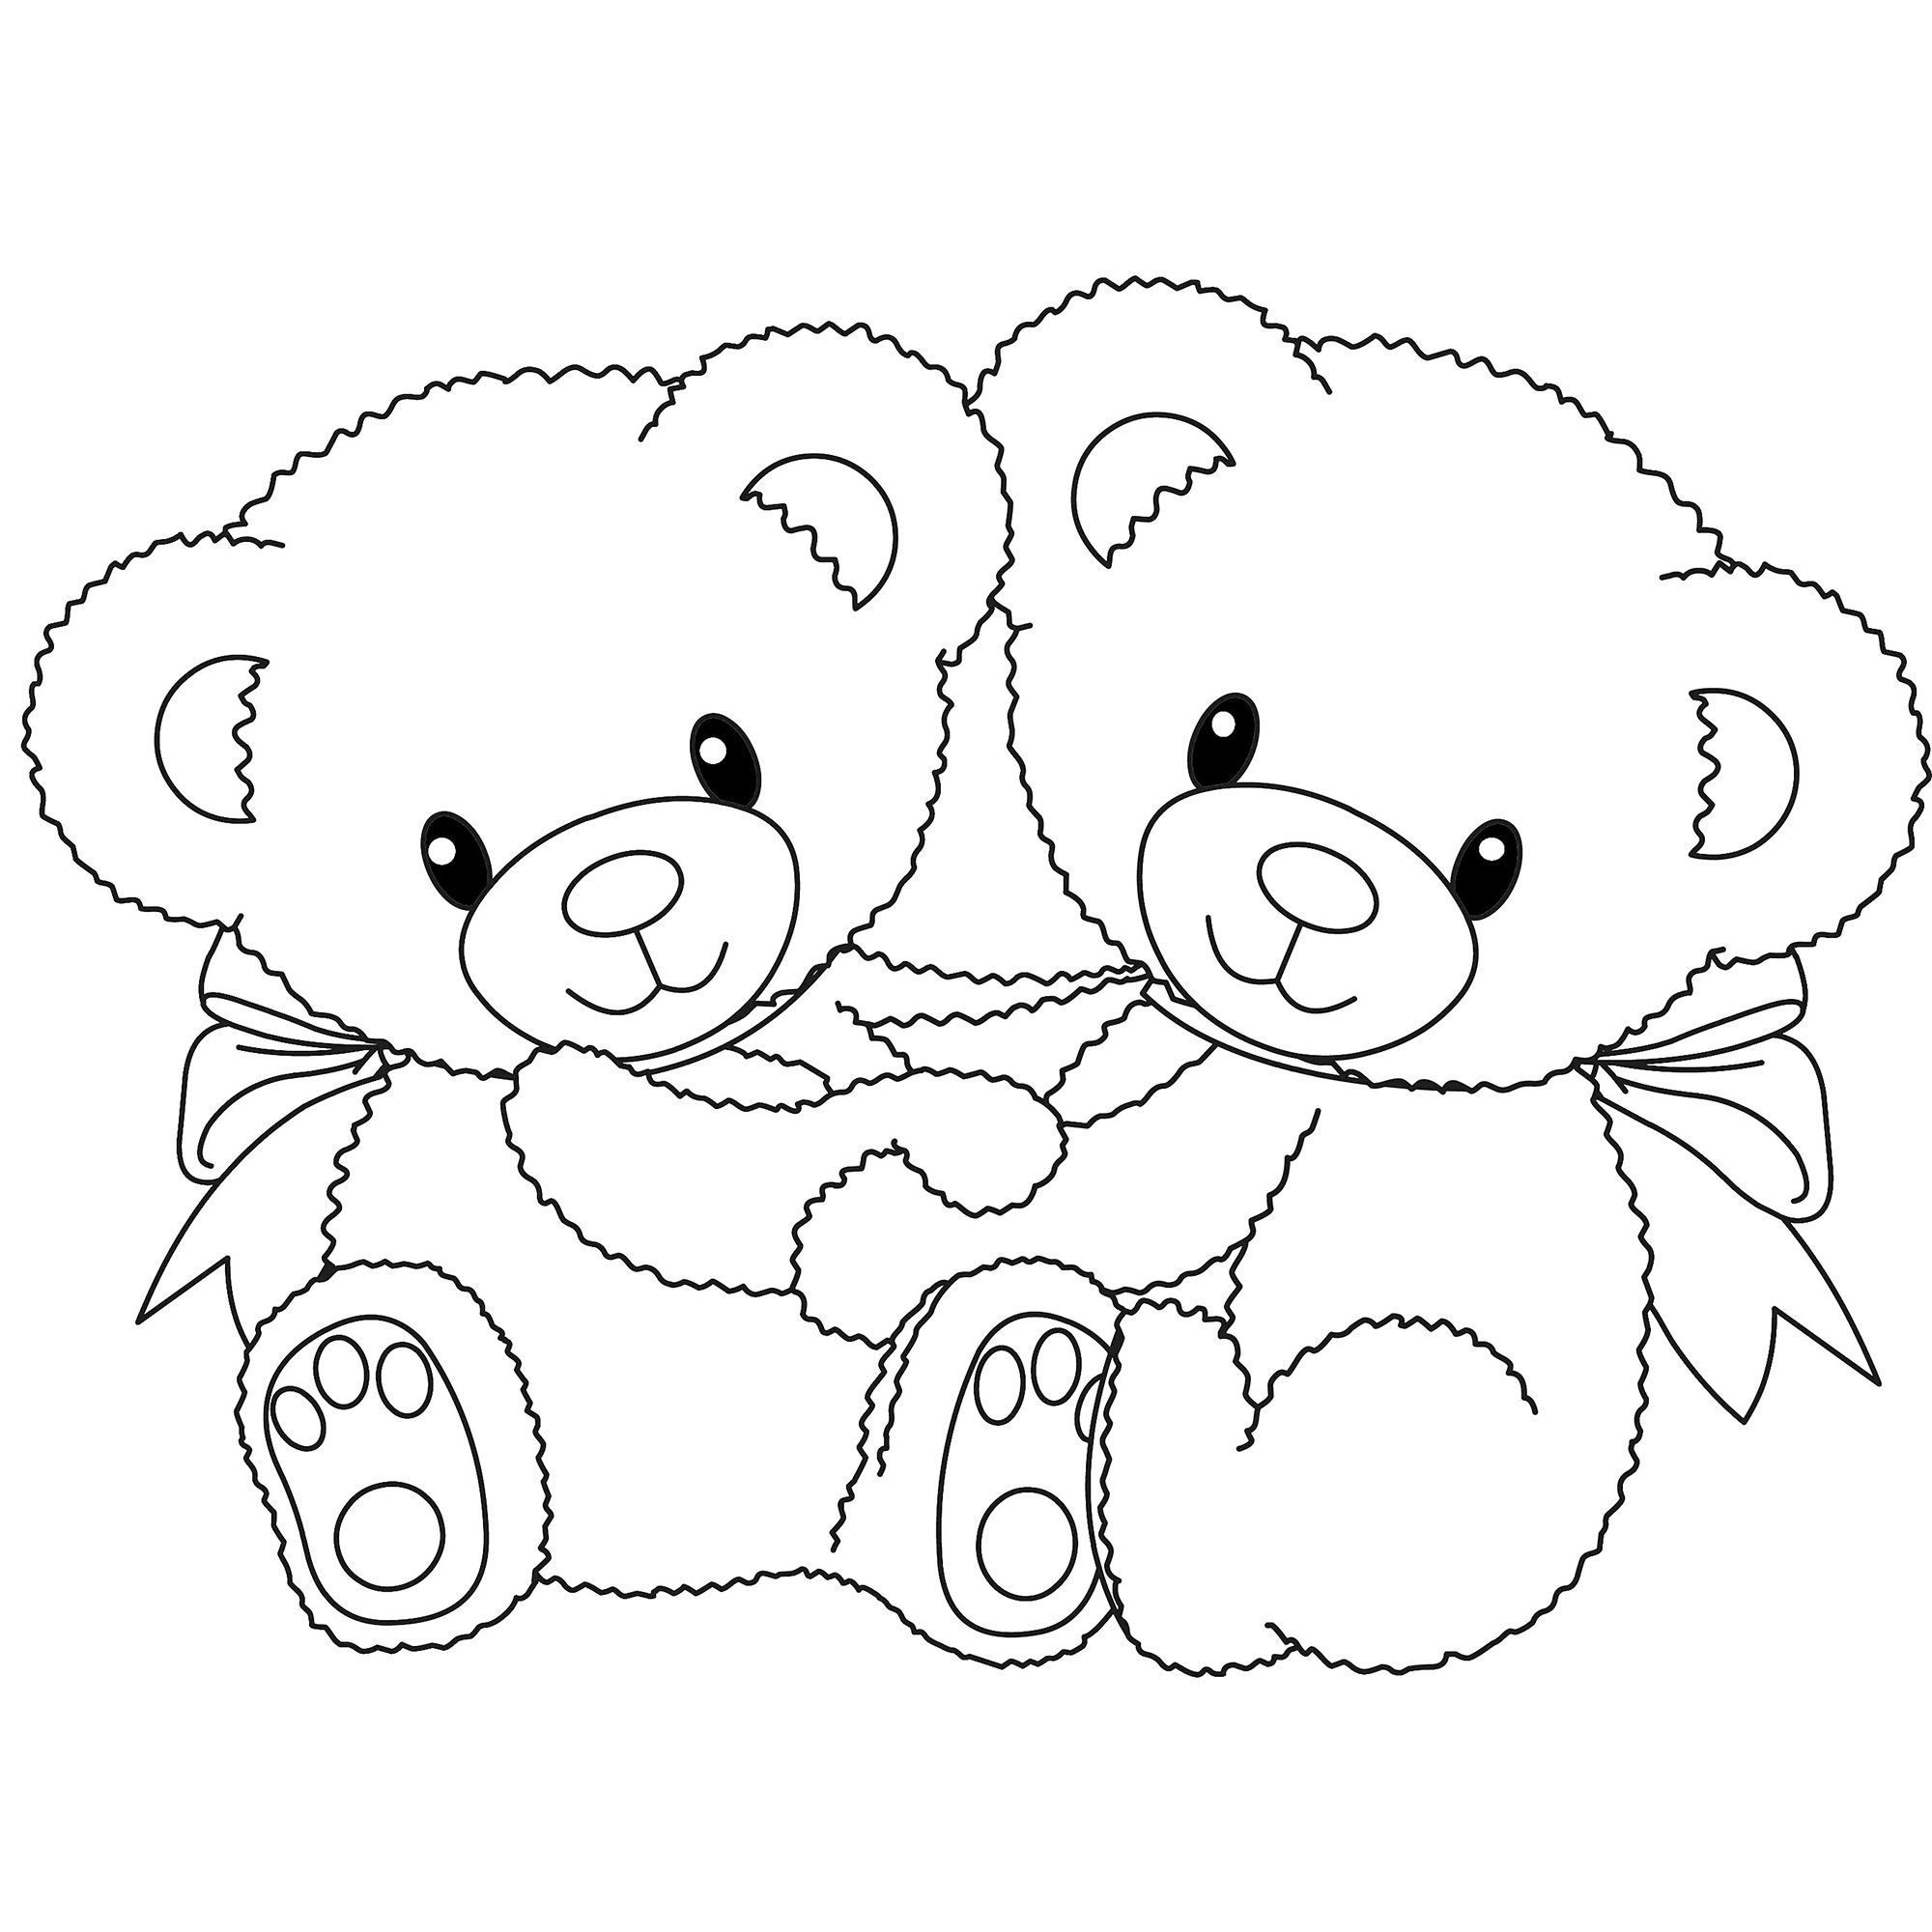 Teddy Bear Coloring Pages Free Printable Coloring Pages Panda